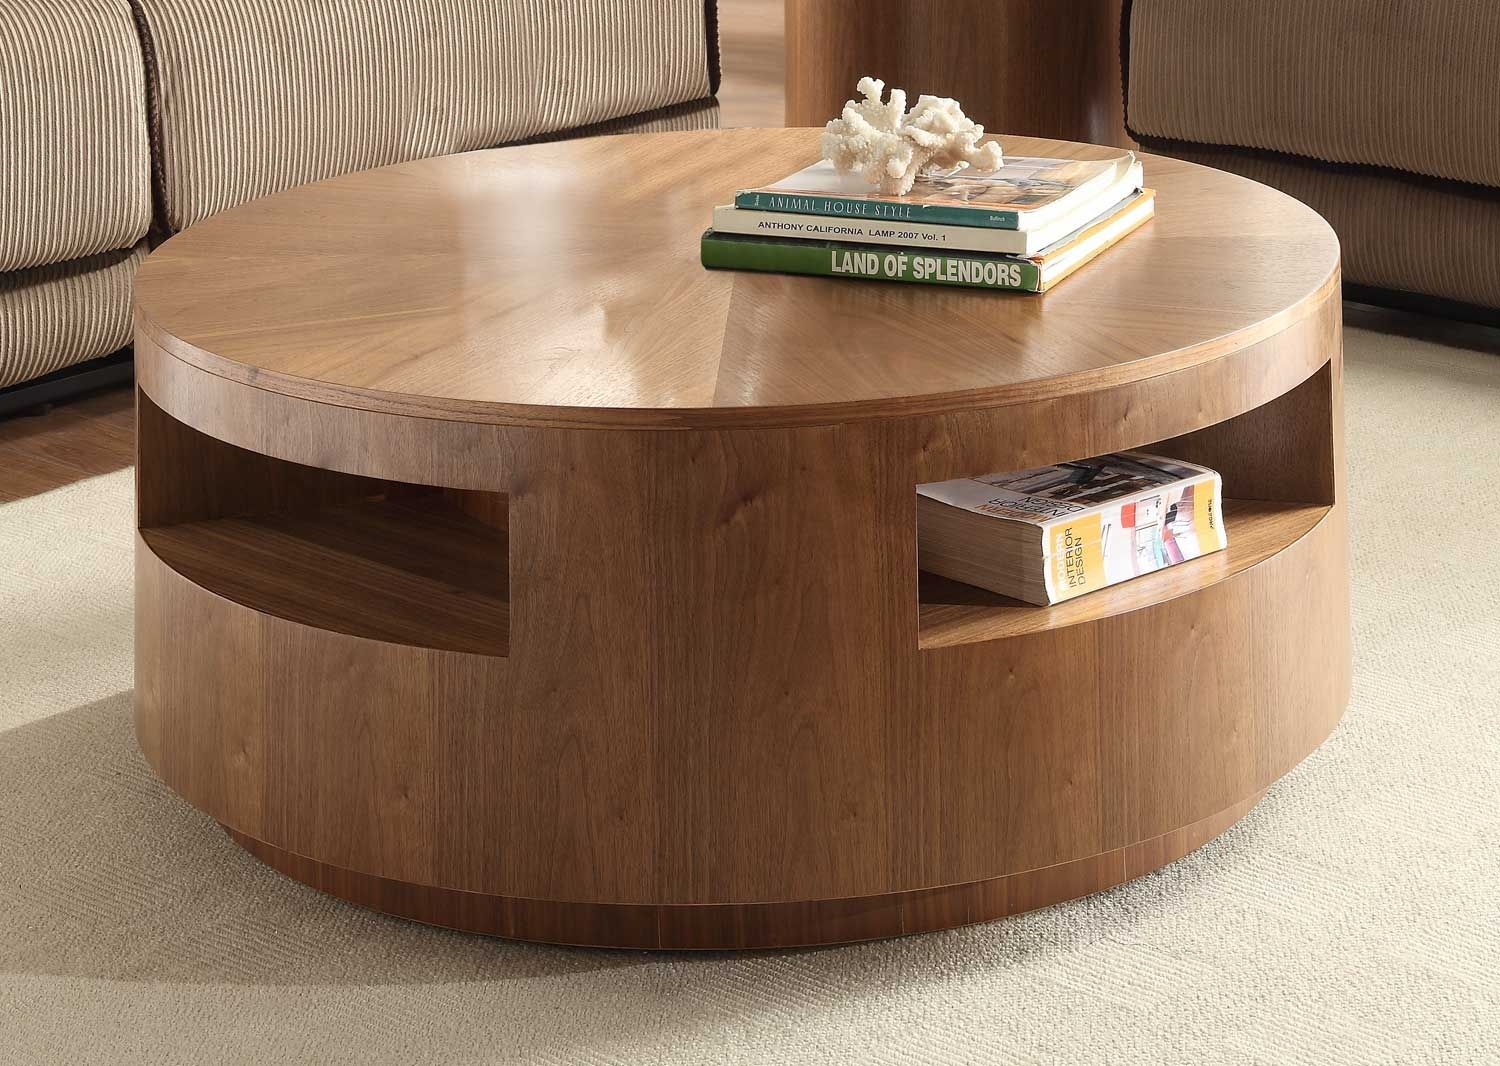 interior media storage end table metal side coffee tables and inch tall round accent large square glass the one most requested features modern homes utilization natural light home